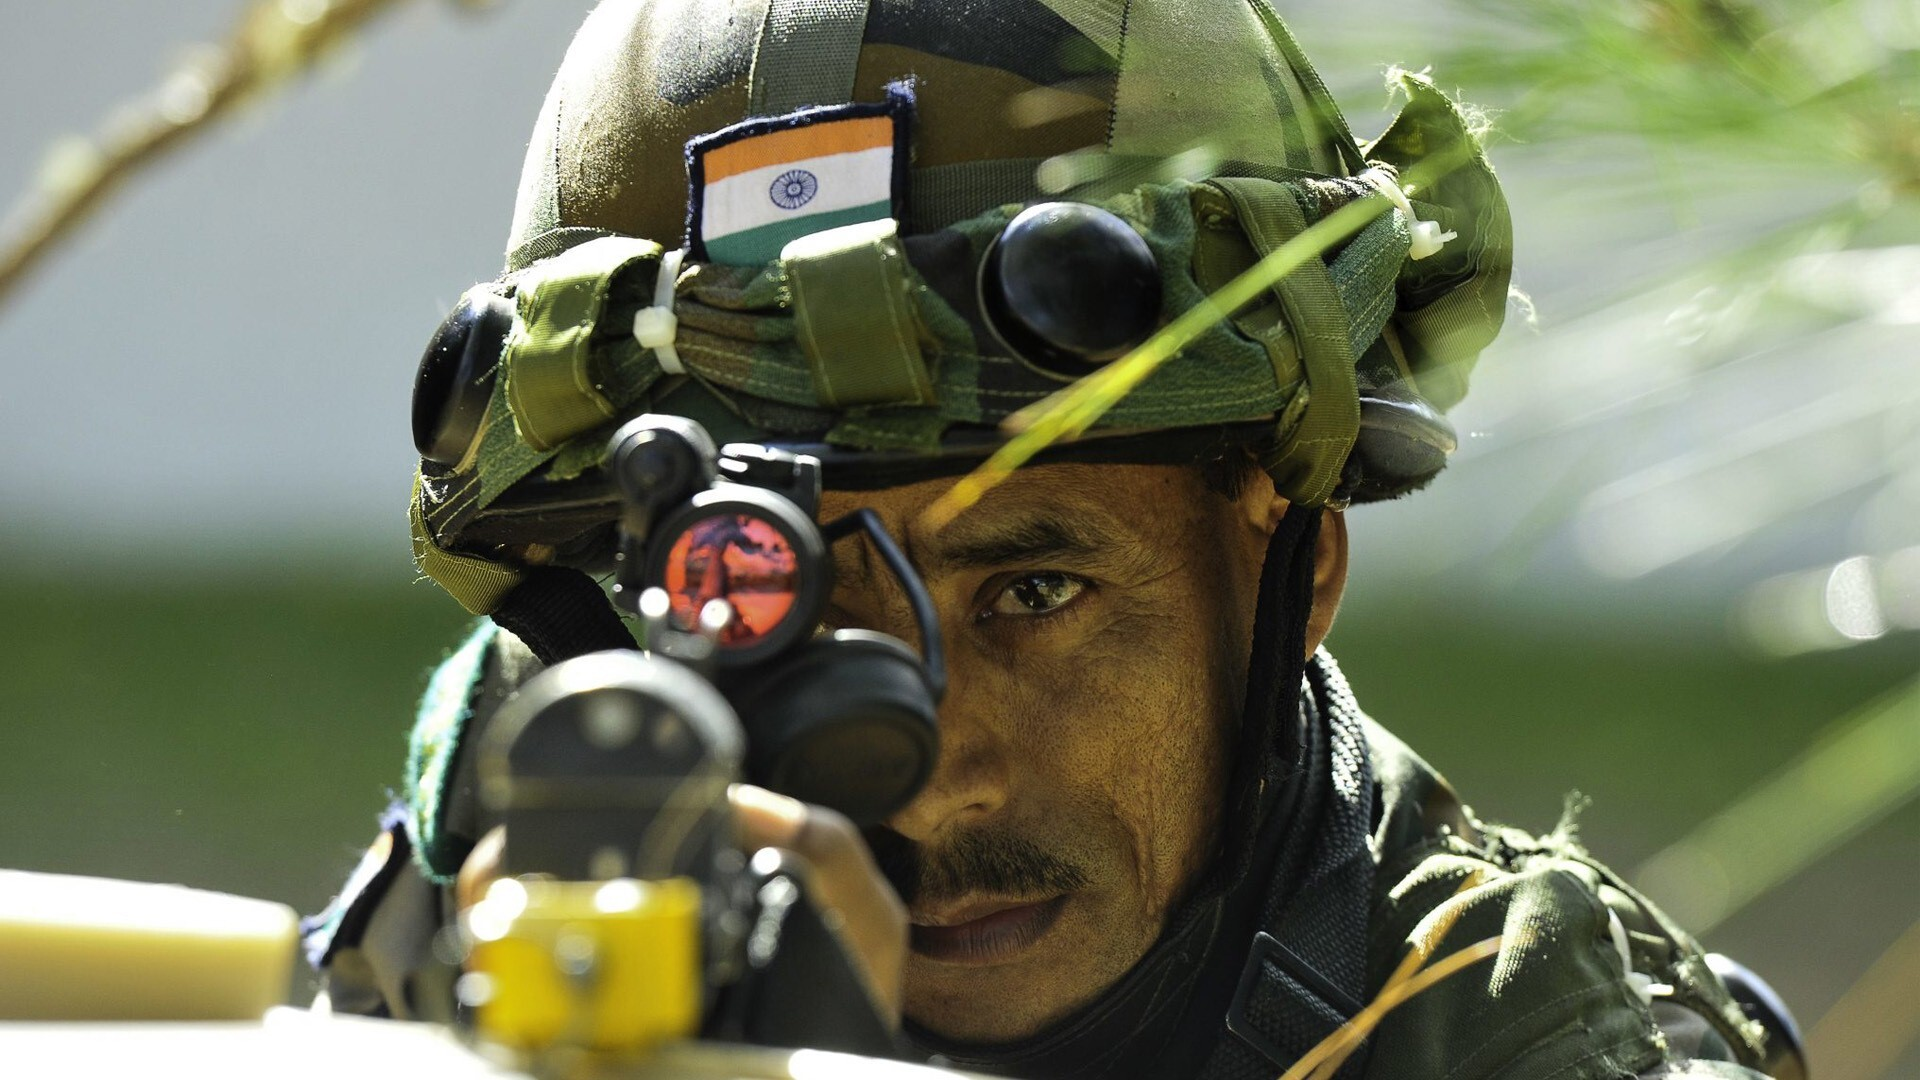 Indian Soldier Wallpaper